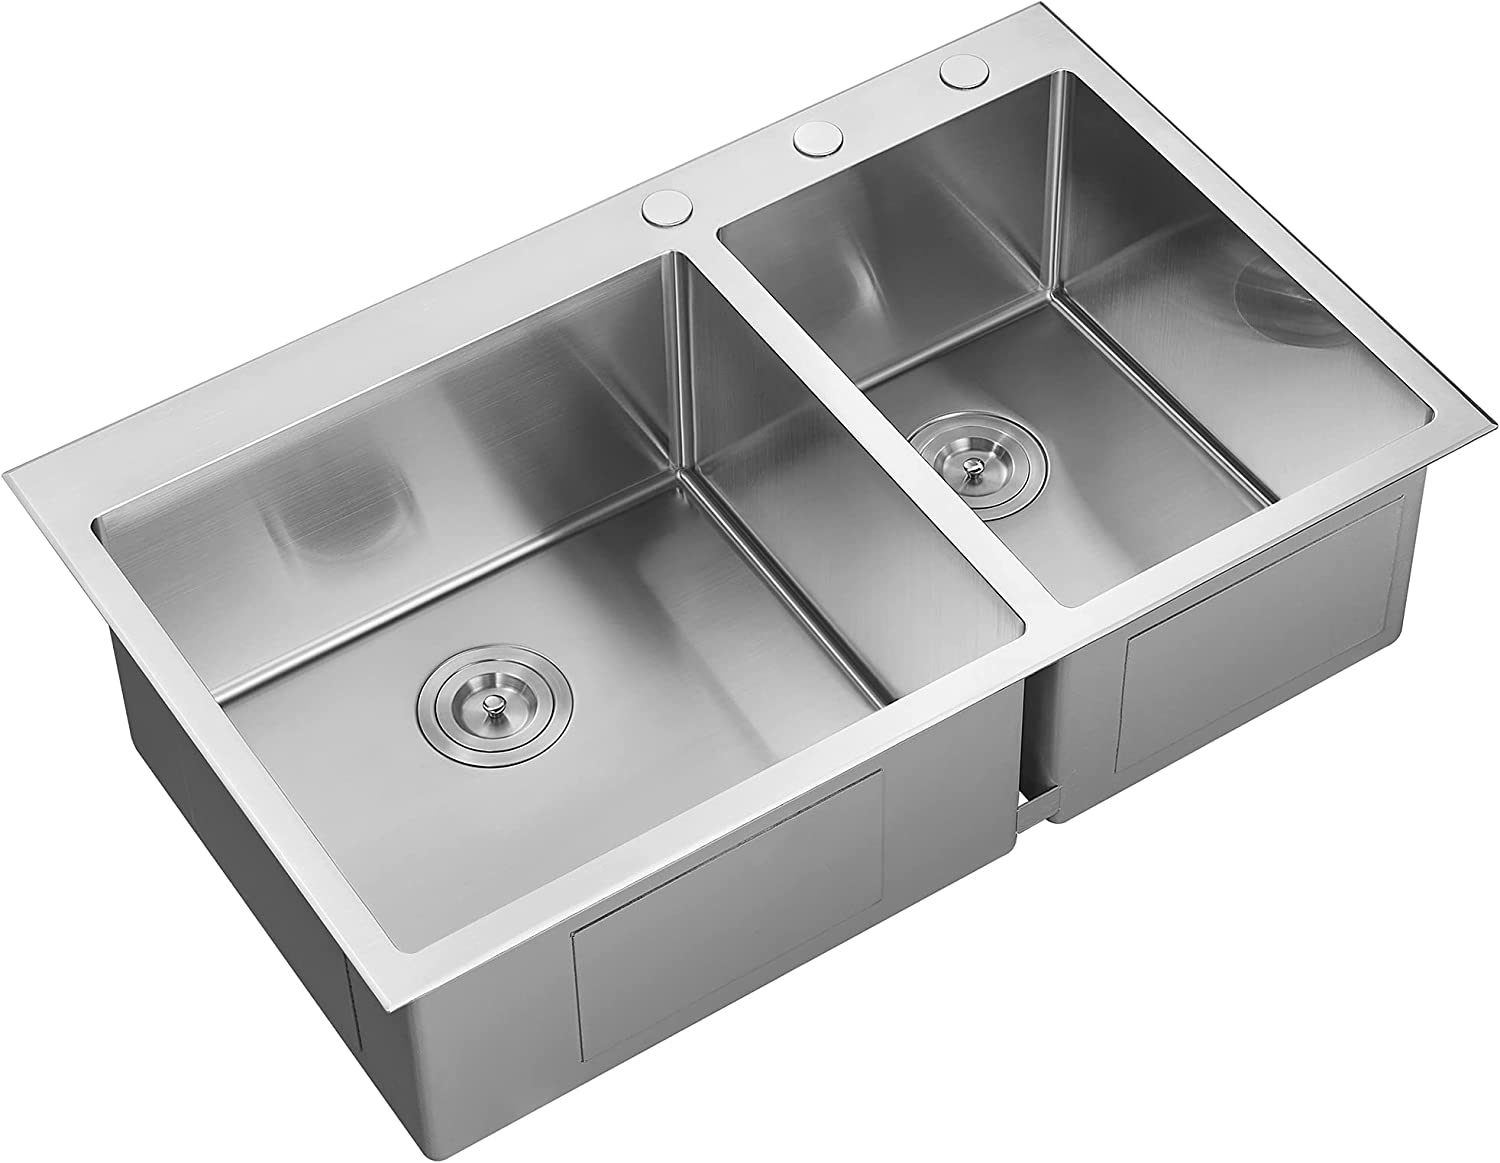 Serene Valley Stainless Steel Limited time San Diego Mall for free shipping Kitchen Sink Deck 36x22-Inch Thick